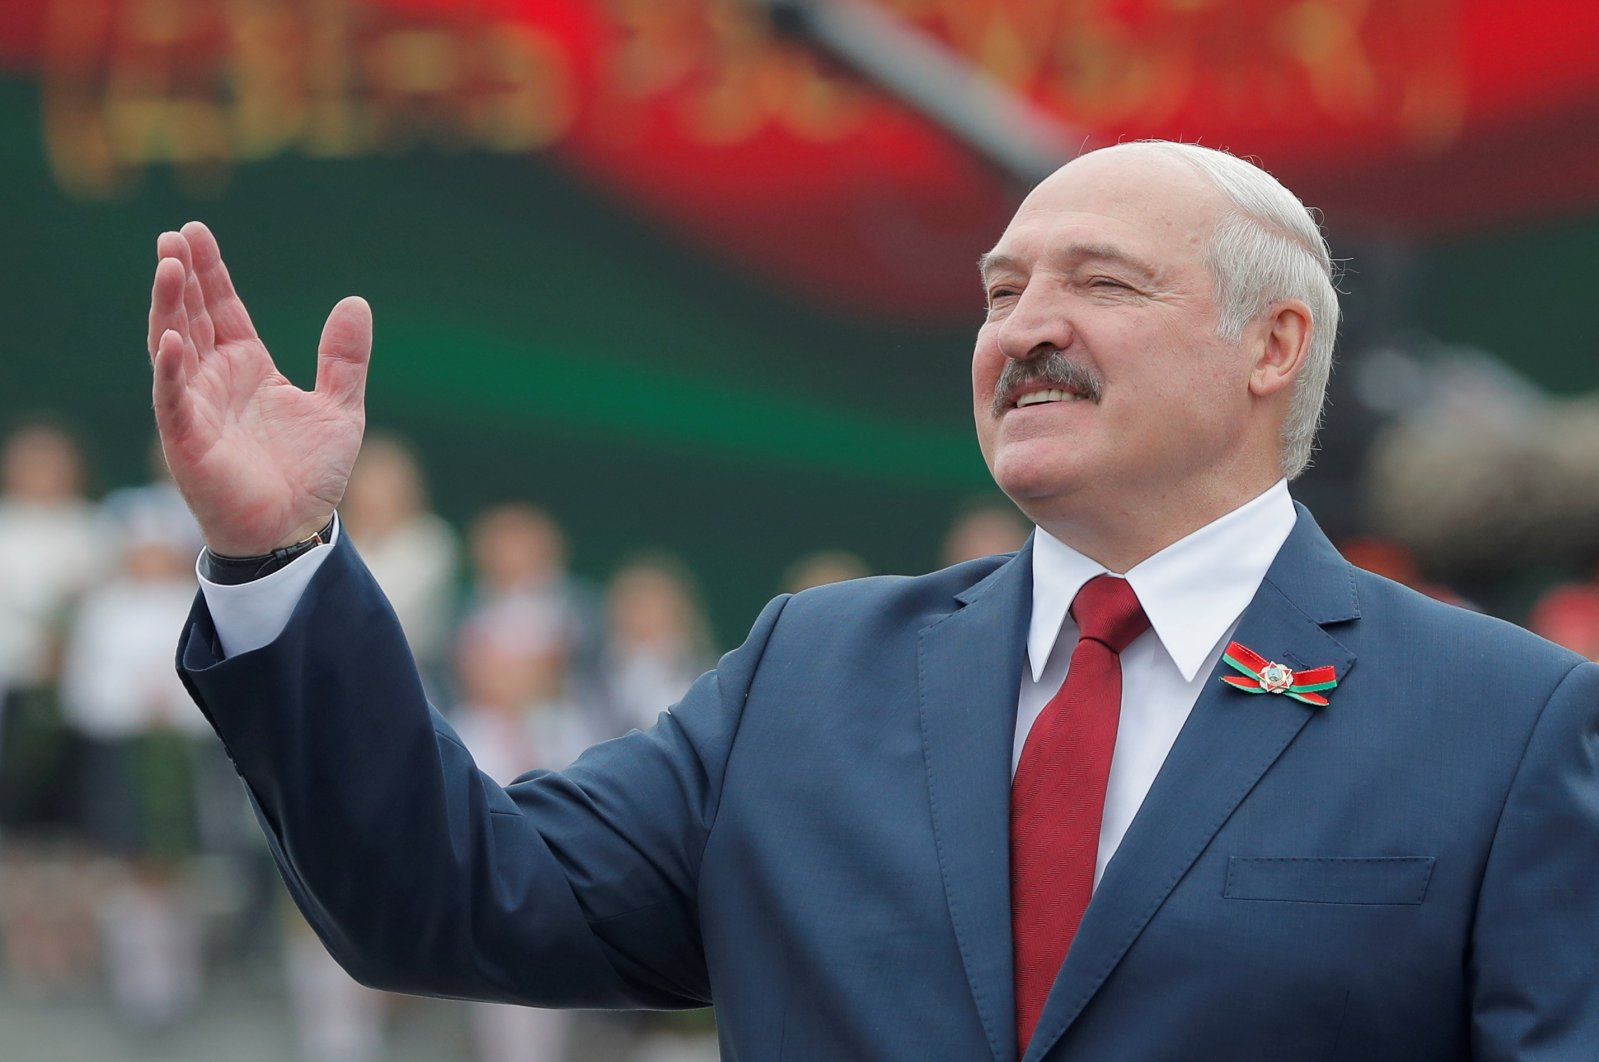 Belarusian President Alexander Lukashenko gestures as he takes part in the celebrations of Independence Day in Minsk, Belarus July 3, 2020. (Reuters Photo)